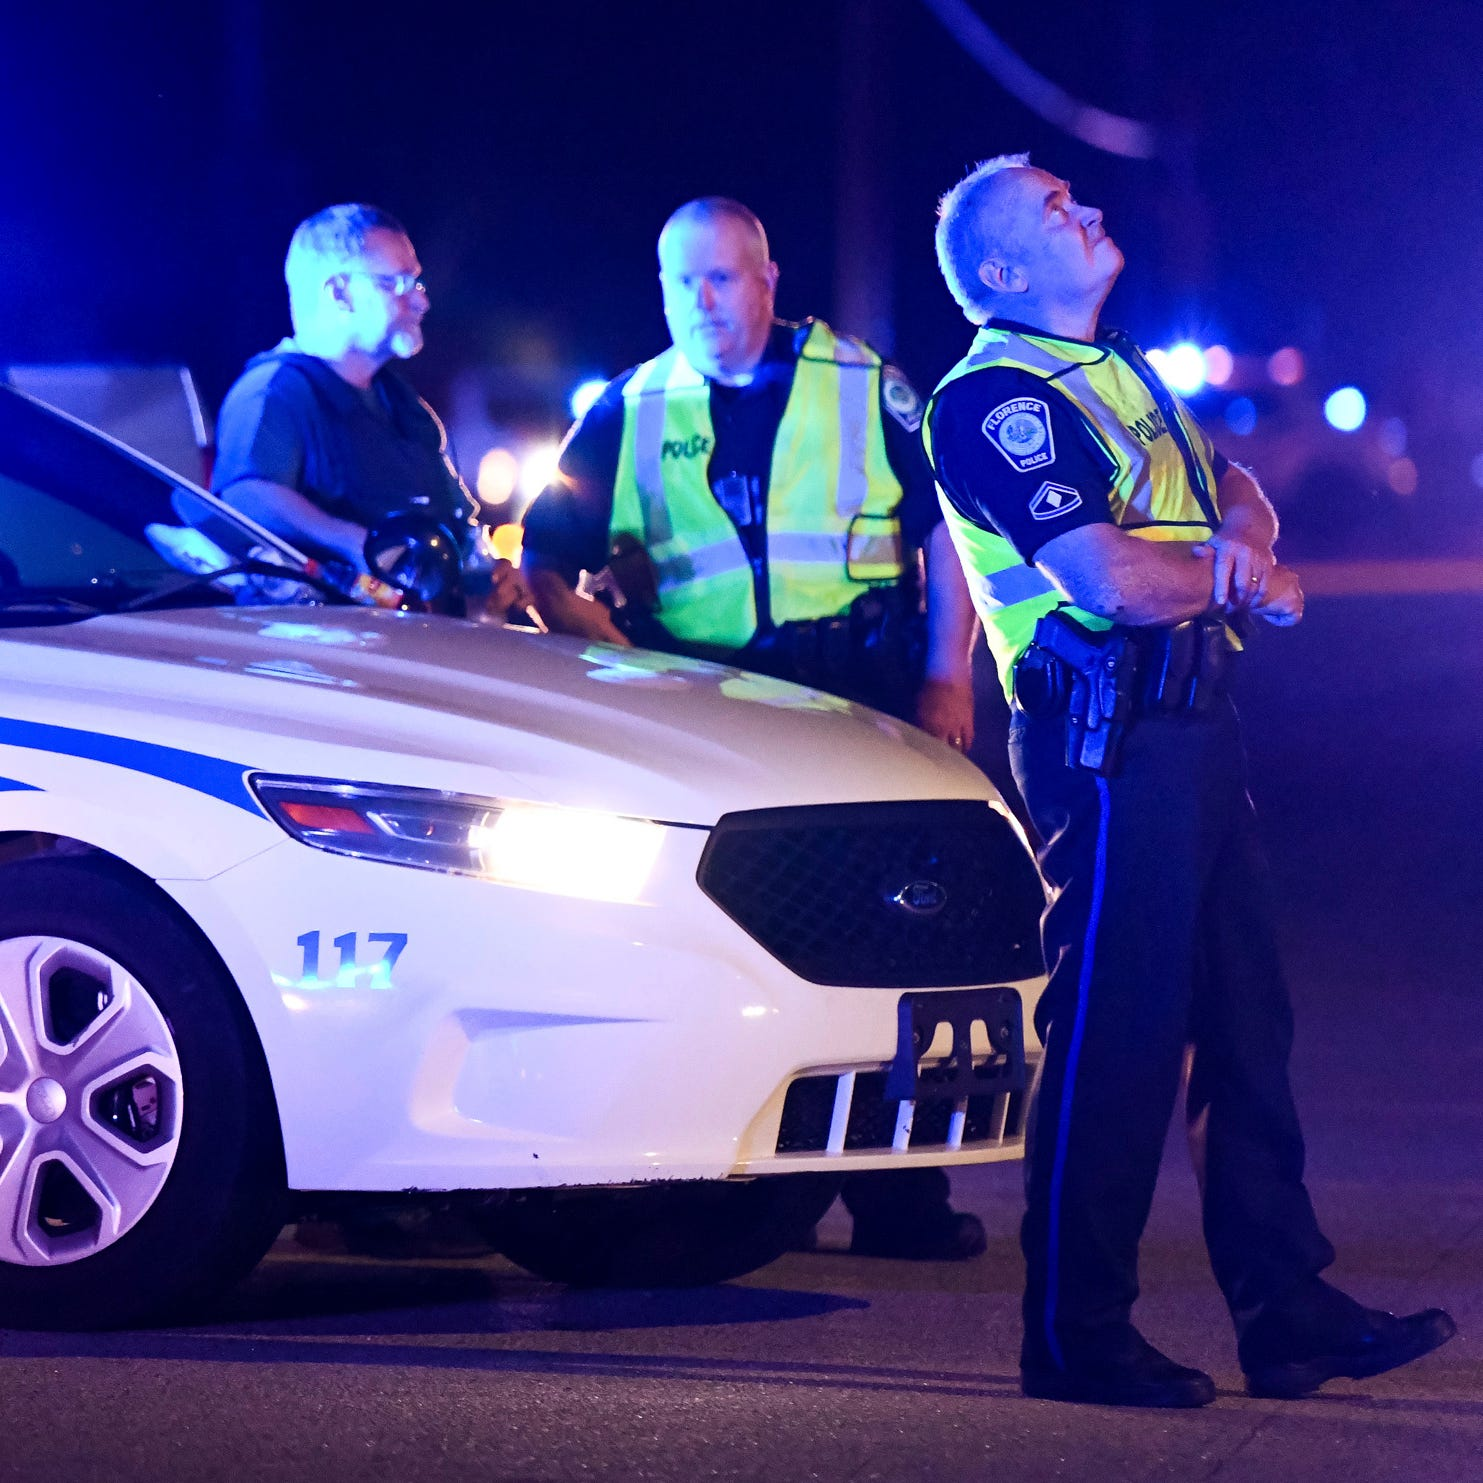 'Fire was being shot all over': 6 officers hurt, 1 dead in South Carolina shooting